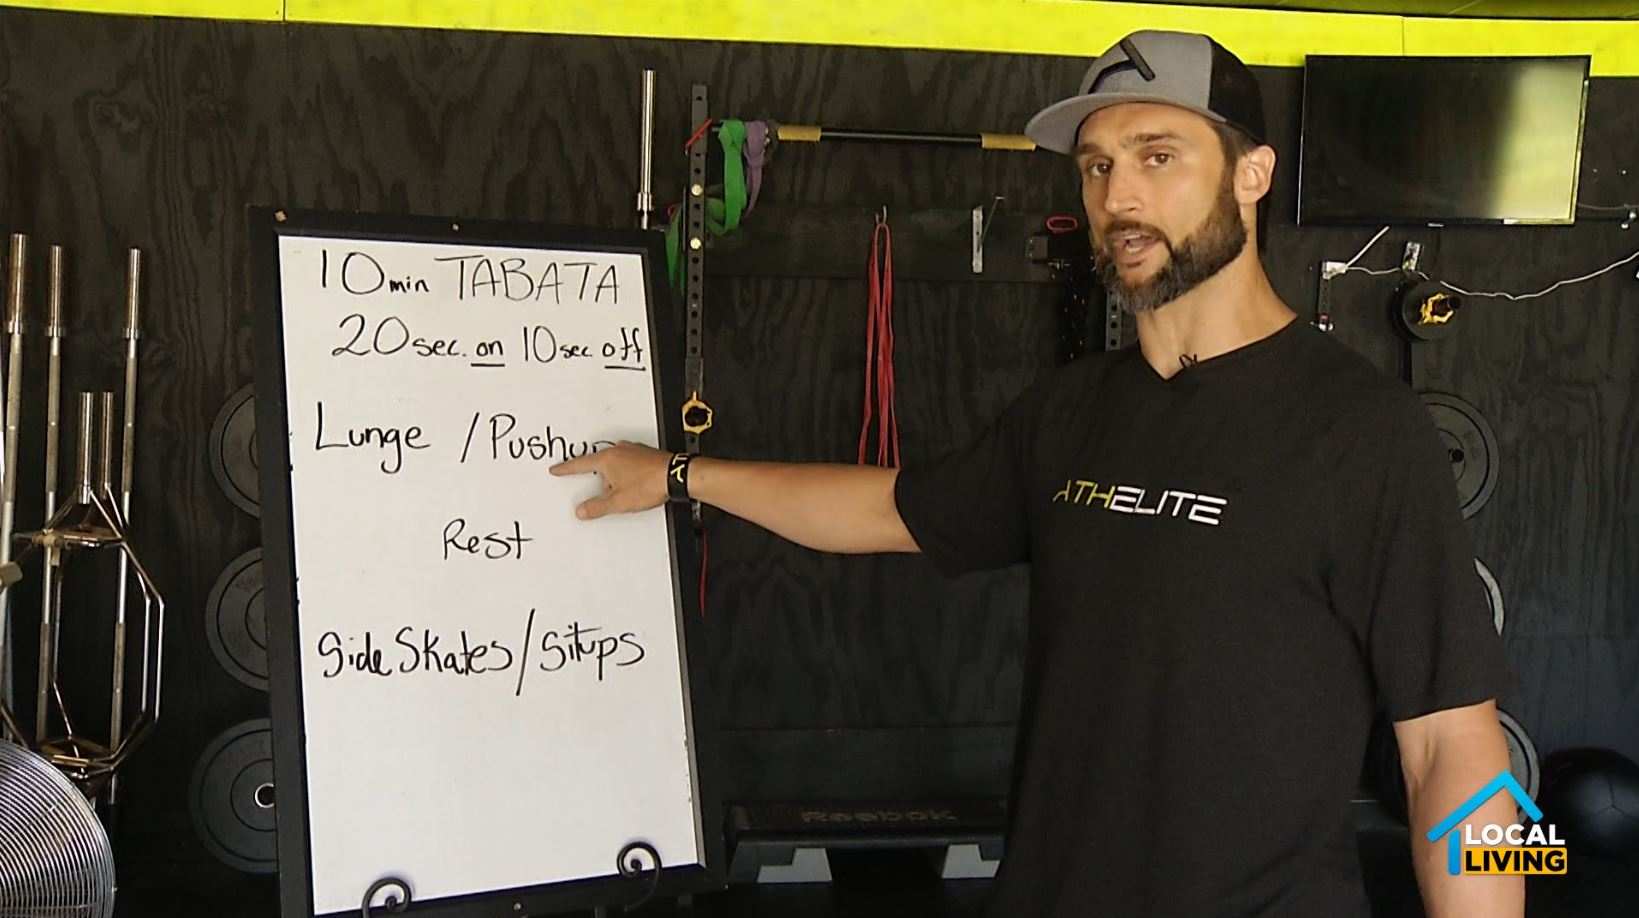 Athelite Fitness gives us tips on how to maintain a balanced diet